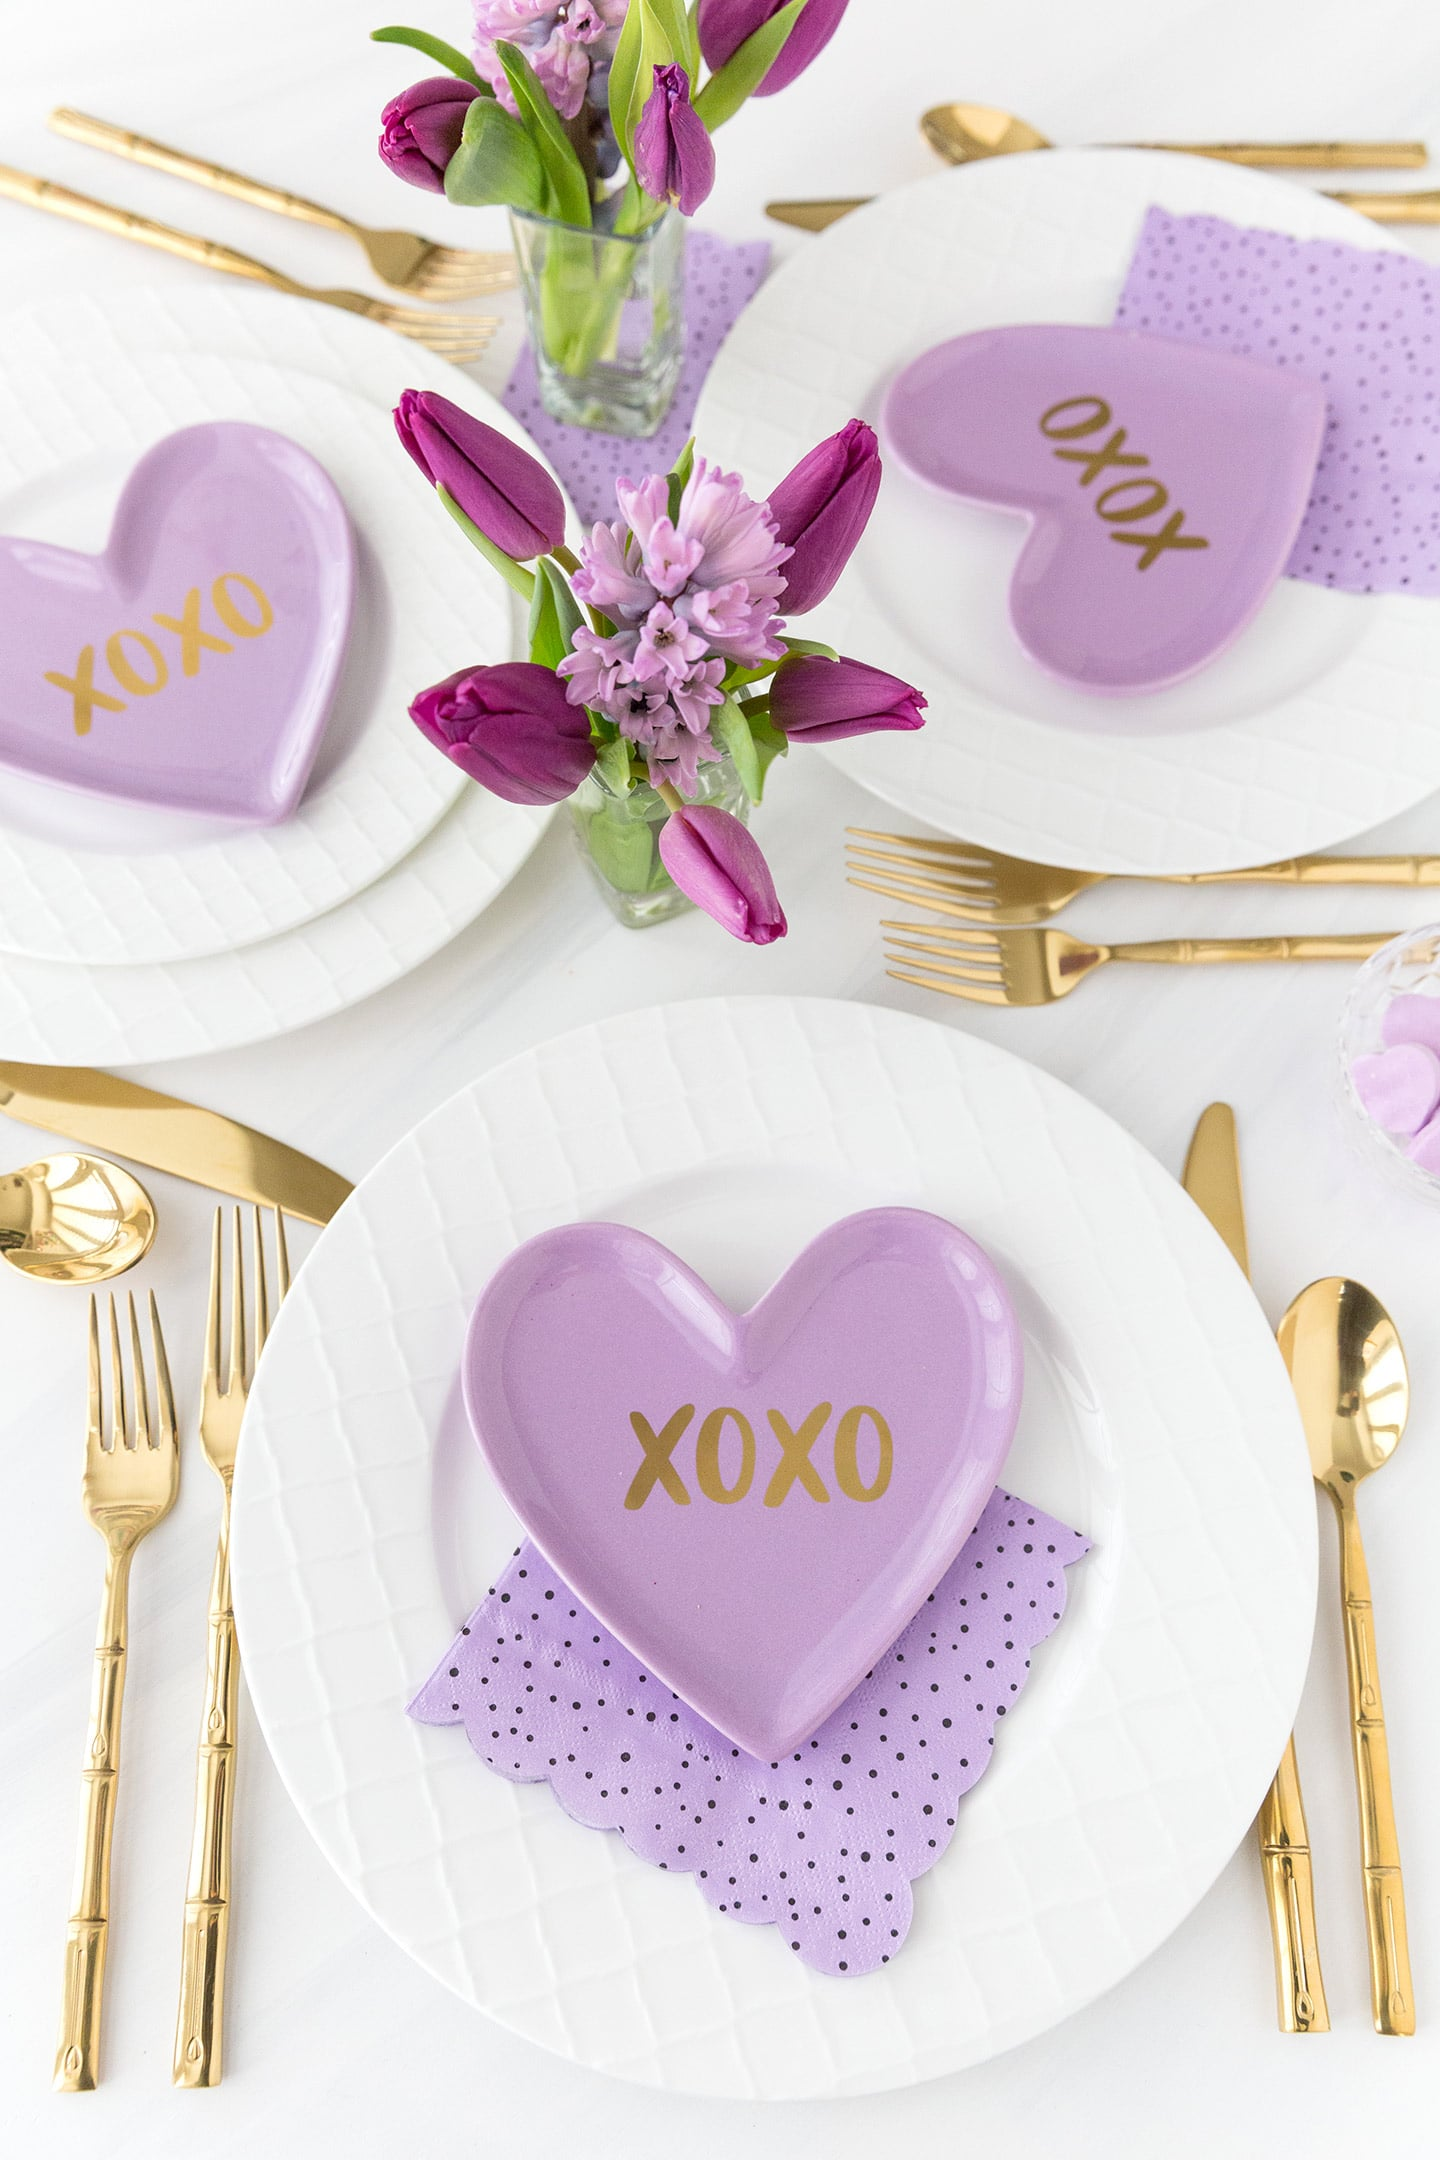 white table settings with purple heart plates on top with XOXO on them and gold silverware and purple flower centerpiece